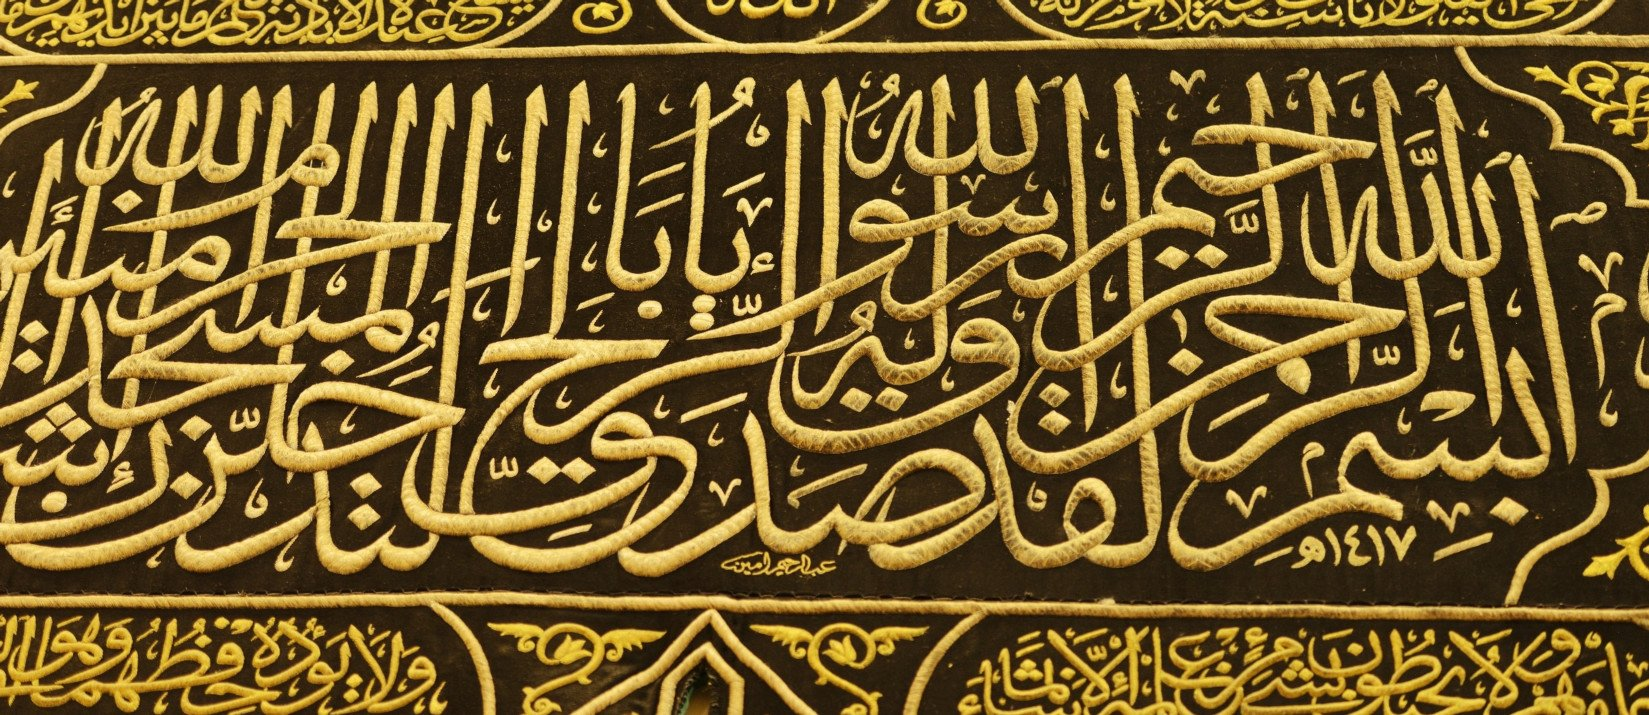 Calligraphy embroidered in gold on the shroud of Kaaba